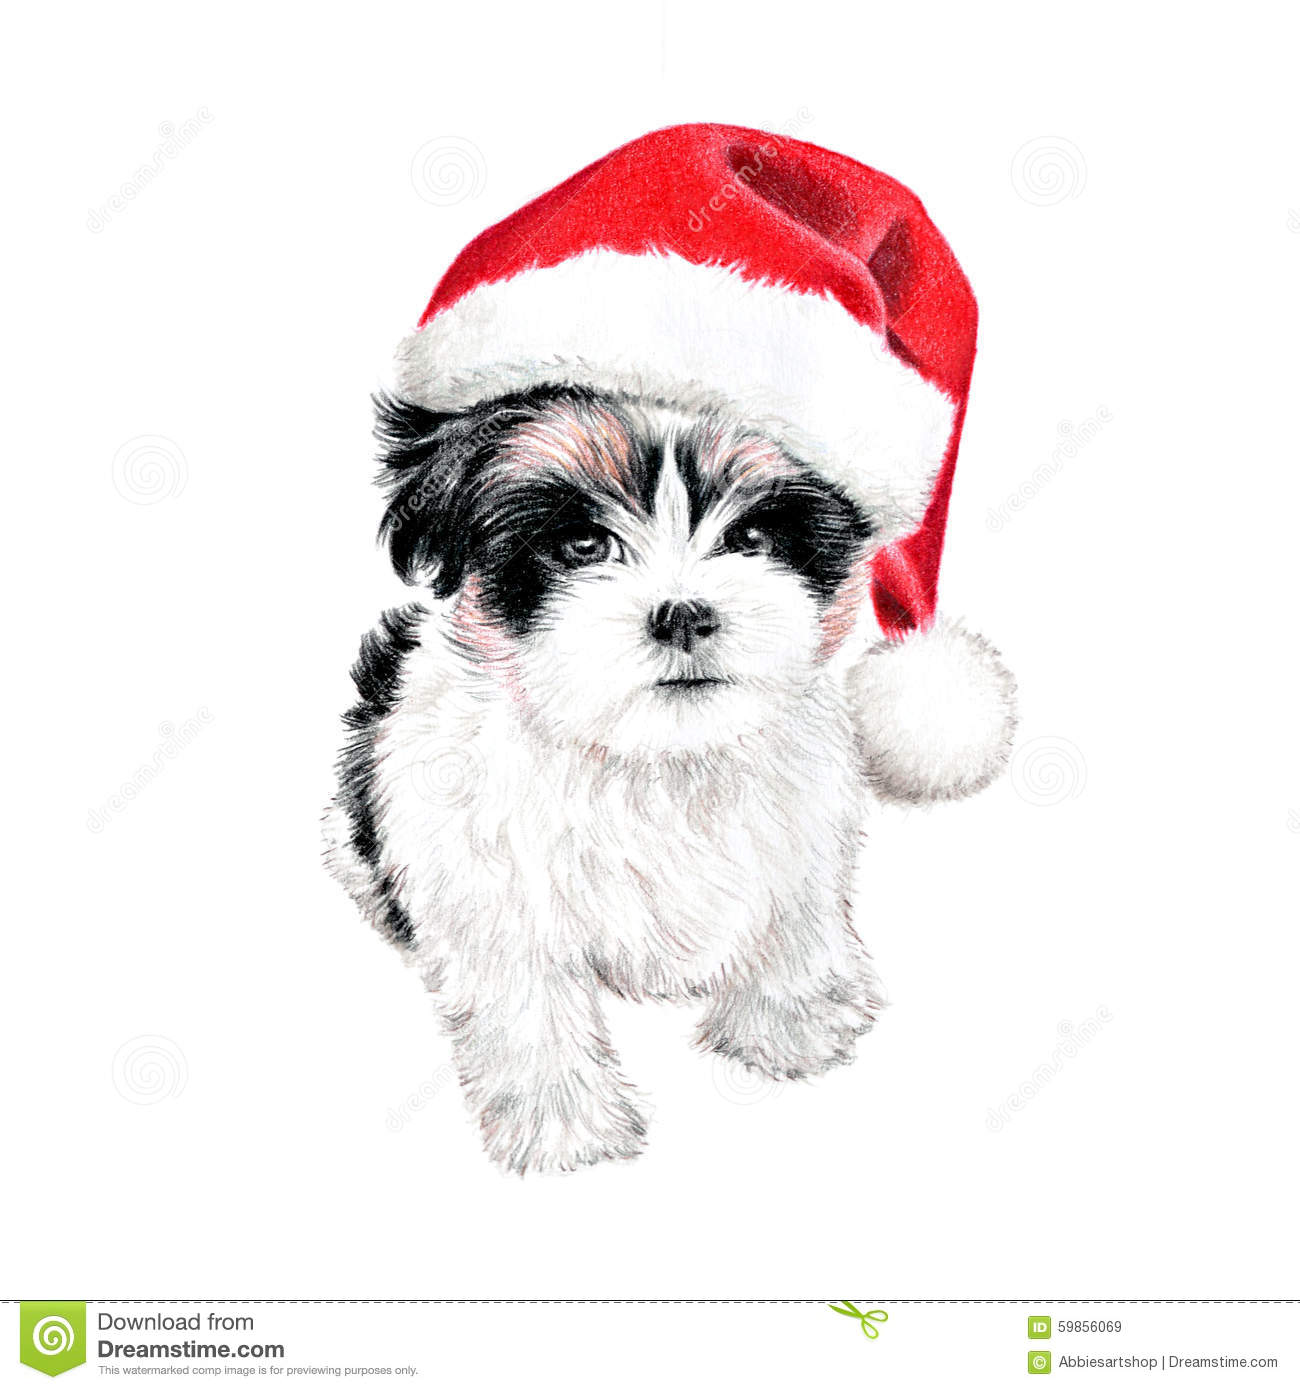 ... puppy dog with santa hat illustration. hand drawn colored pencil art